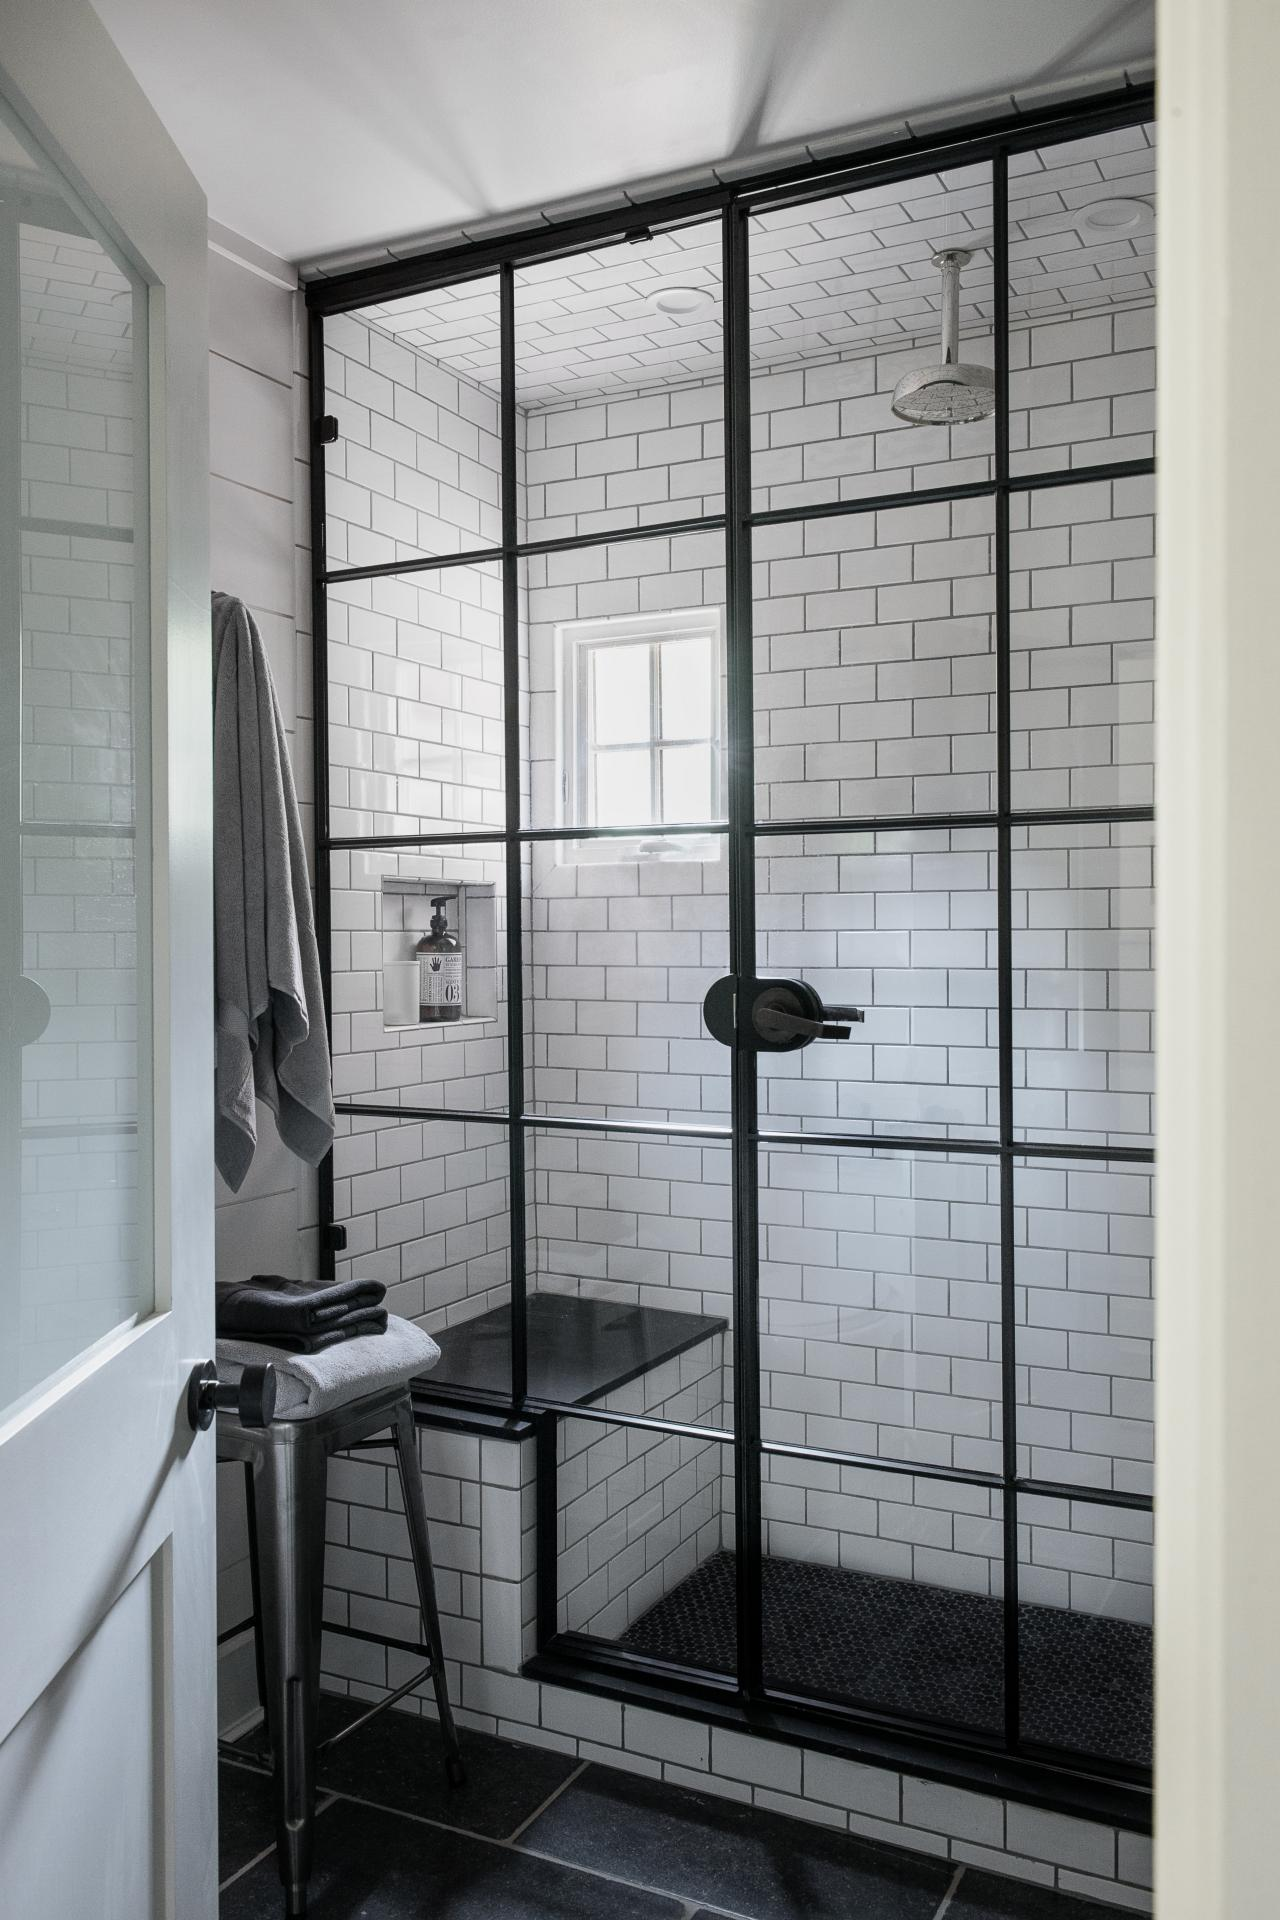 Subway Tile Bathroom Designs The History Of Subway Tile Our Favorite Ways To Use It Hgtv S